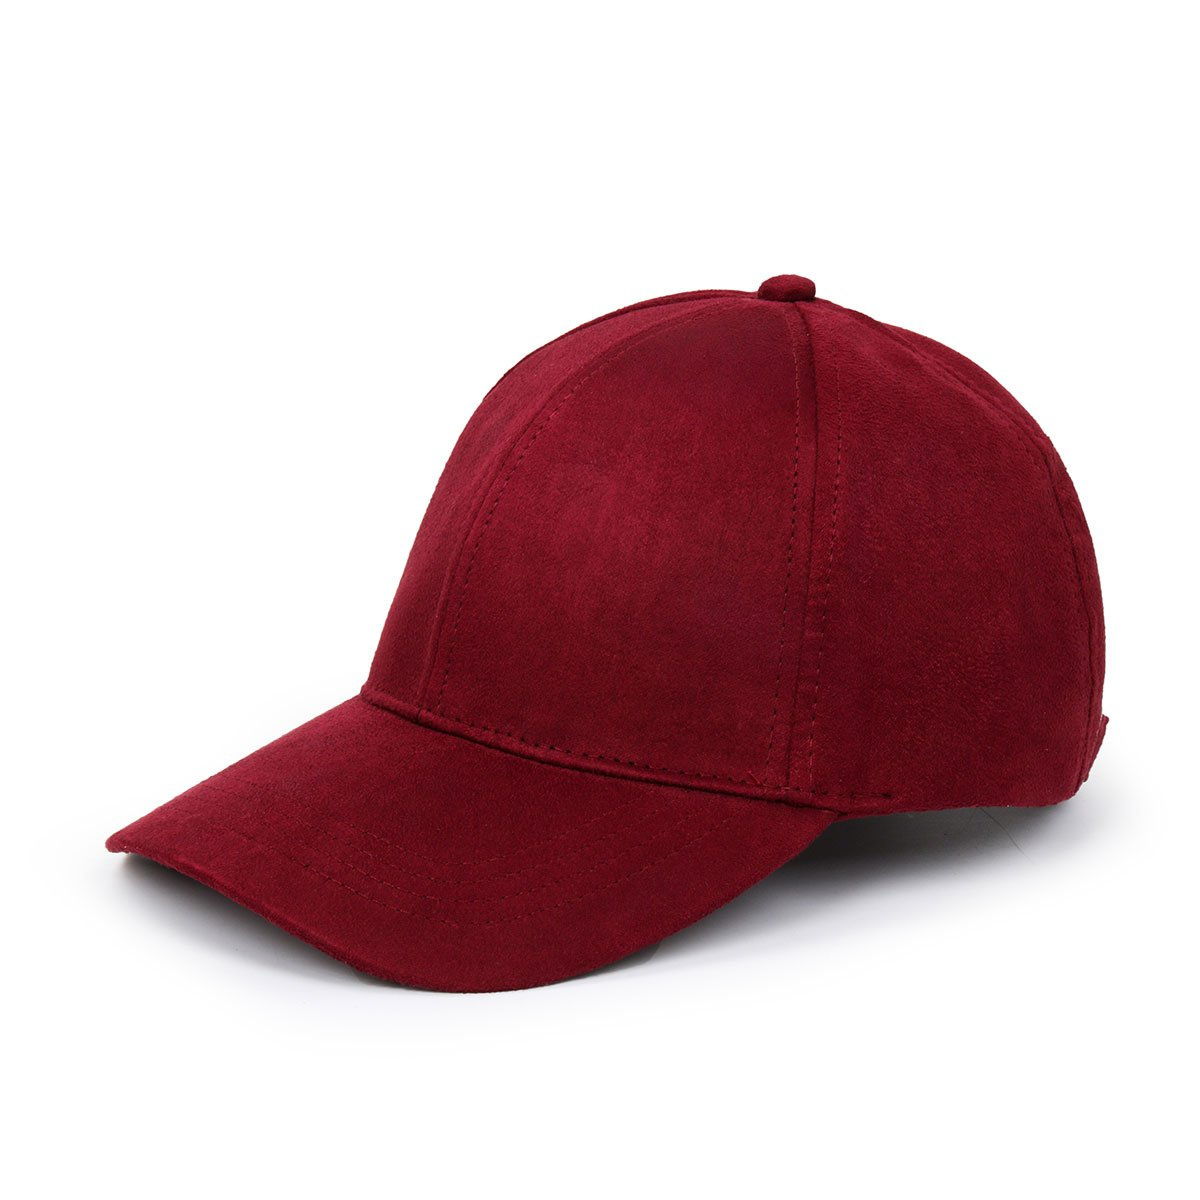 Cusfull Soft Faux Suede Leather Baseball Cap Adjustable Classic Sports Hat